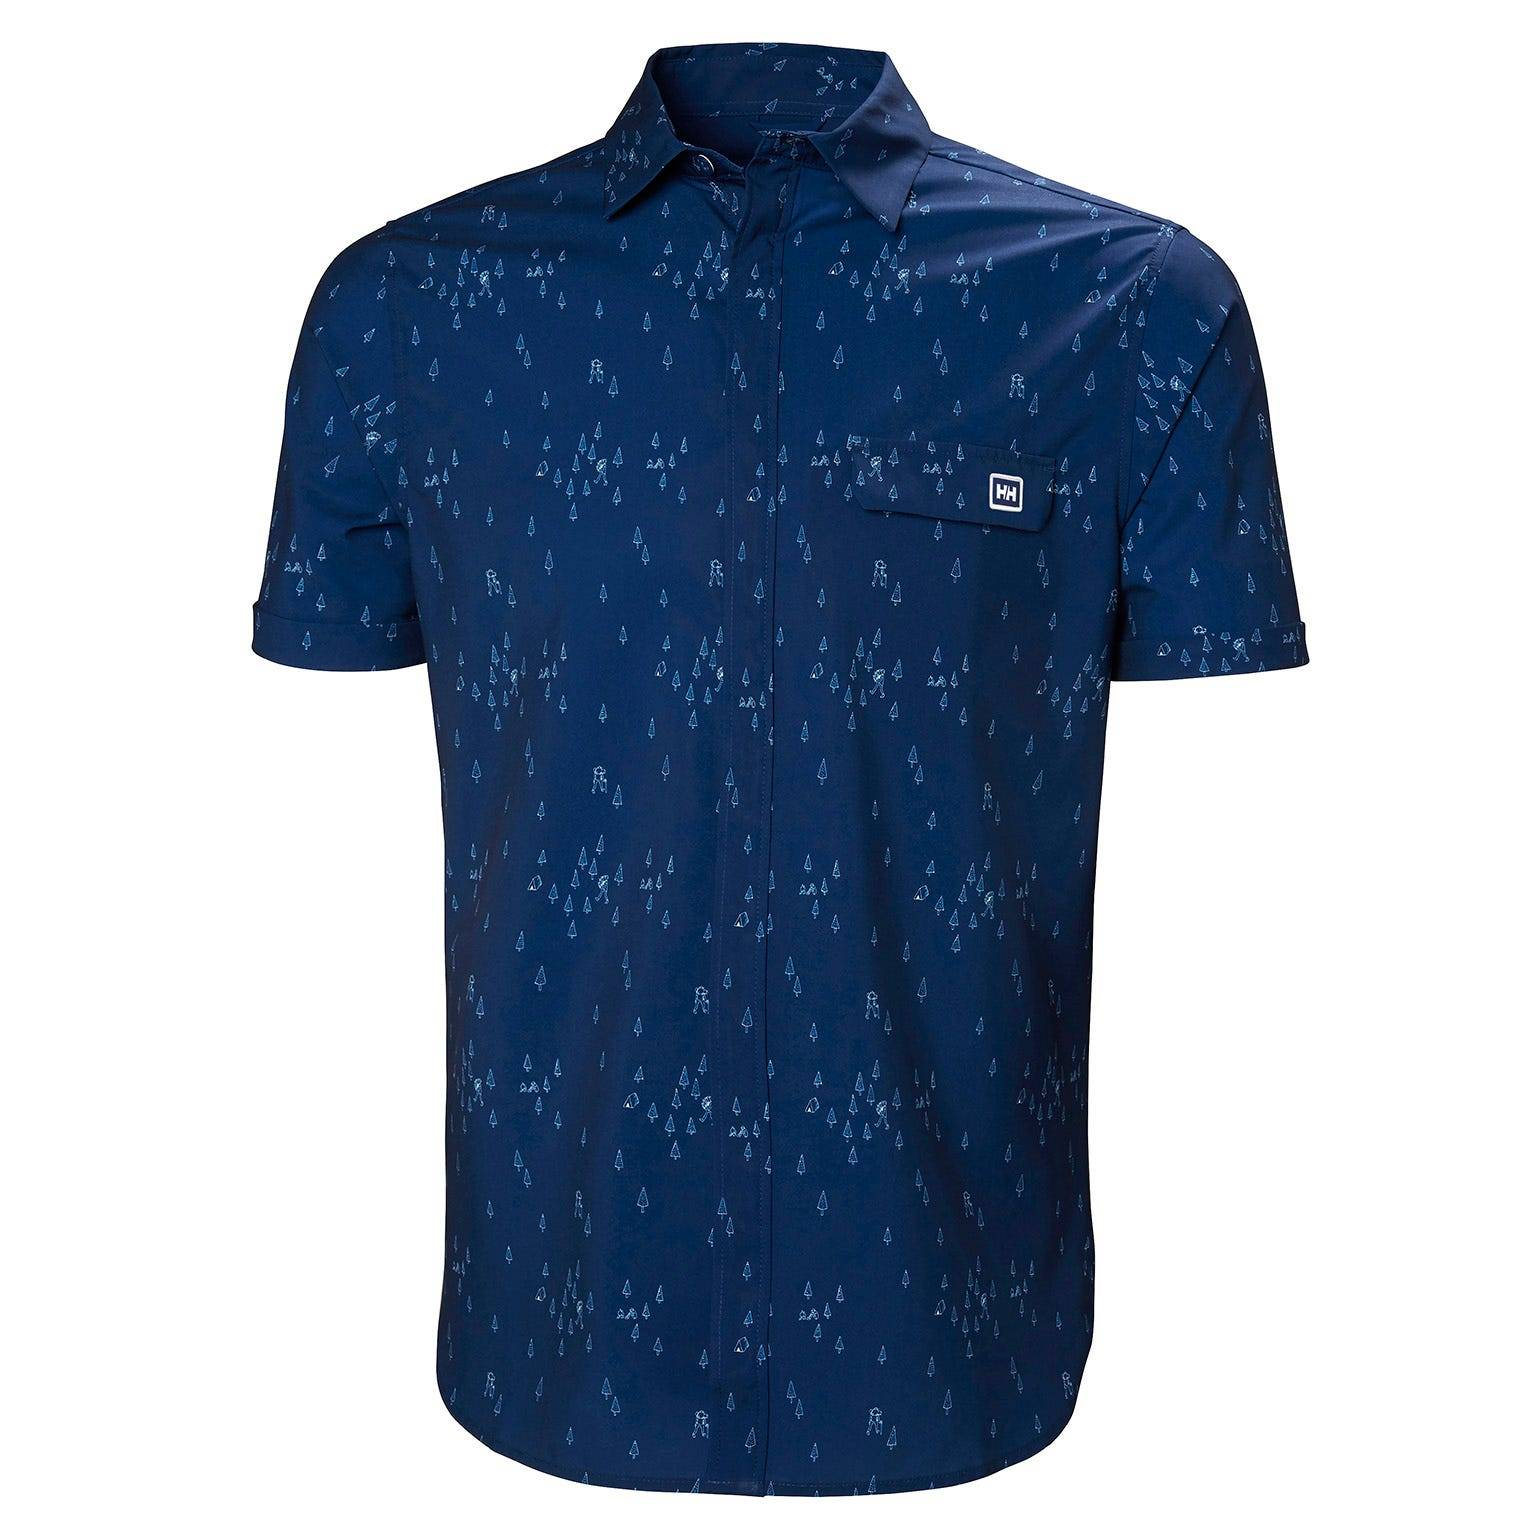 Helly Hansen Oya Shirt Mens Midlayer Blue S